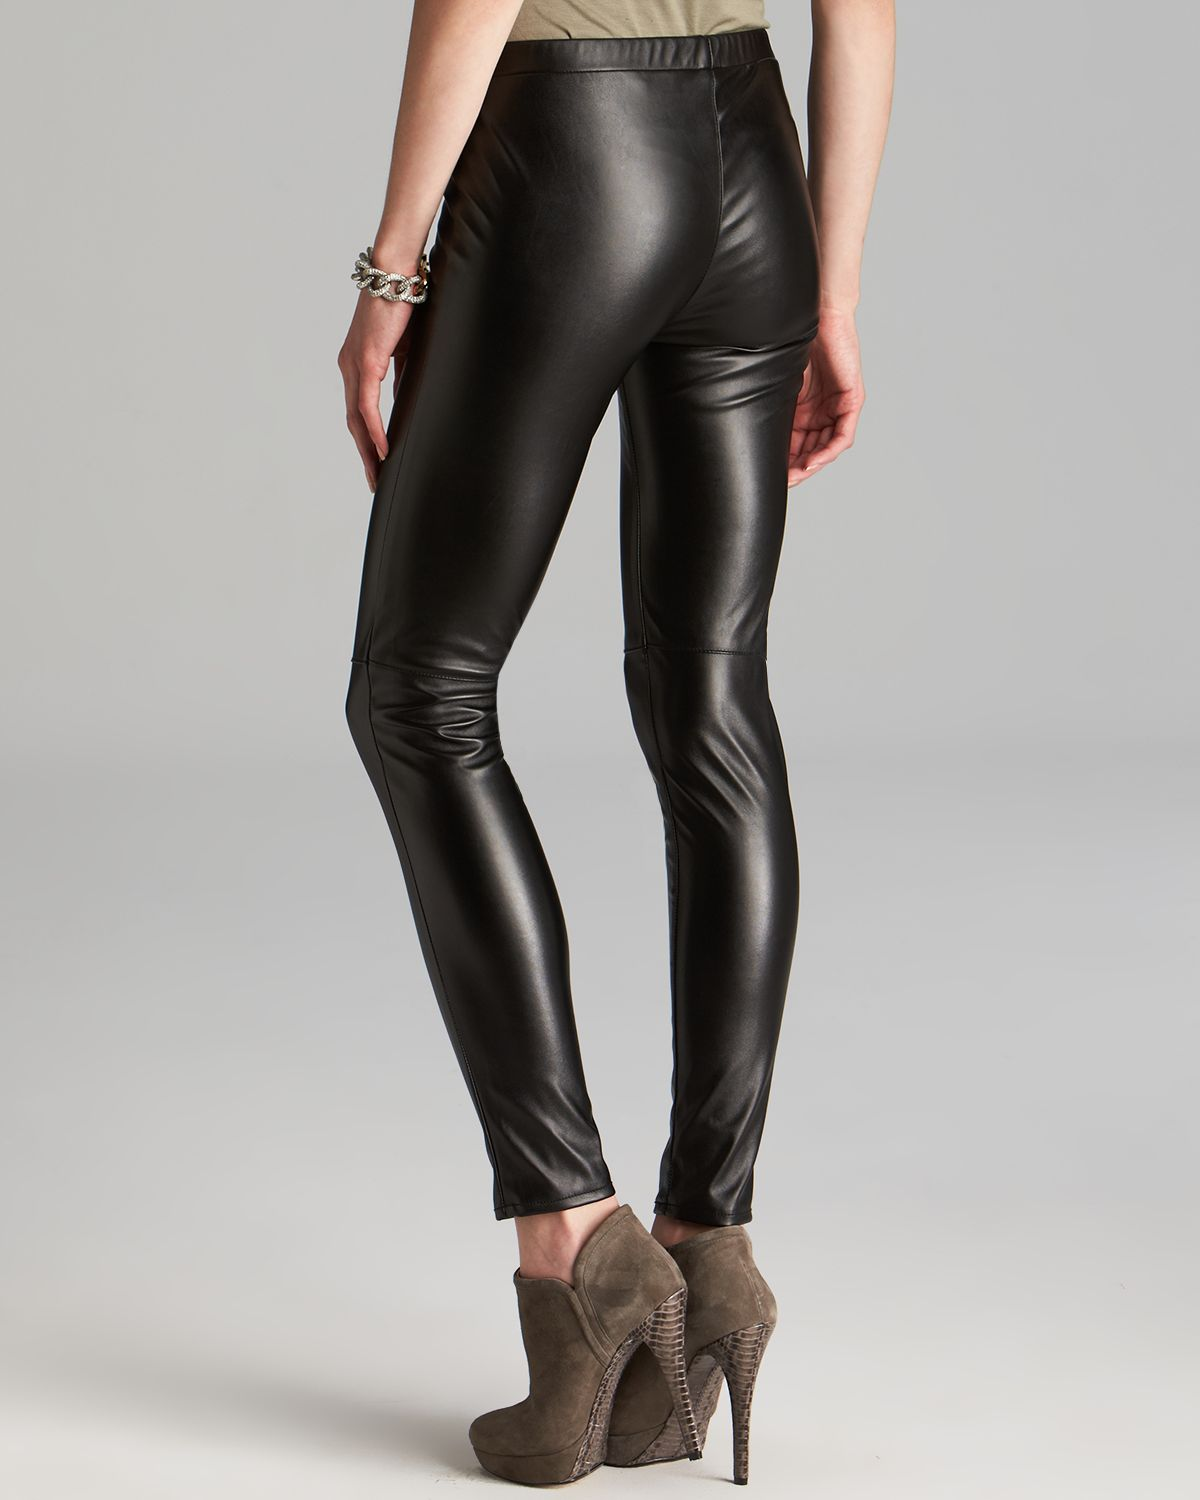 Share Faux Leather Legging in Black on Pinterest (opens in a new window) Share Faux Leather Legging in Black on Google (opens in a new window) Faux Leather Legging KARL X KAIA KARL X KAIA $ Or 4 installments of $ by afterpay.